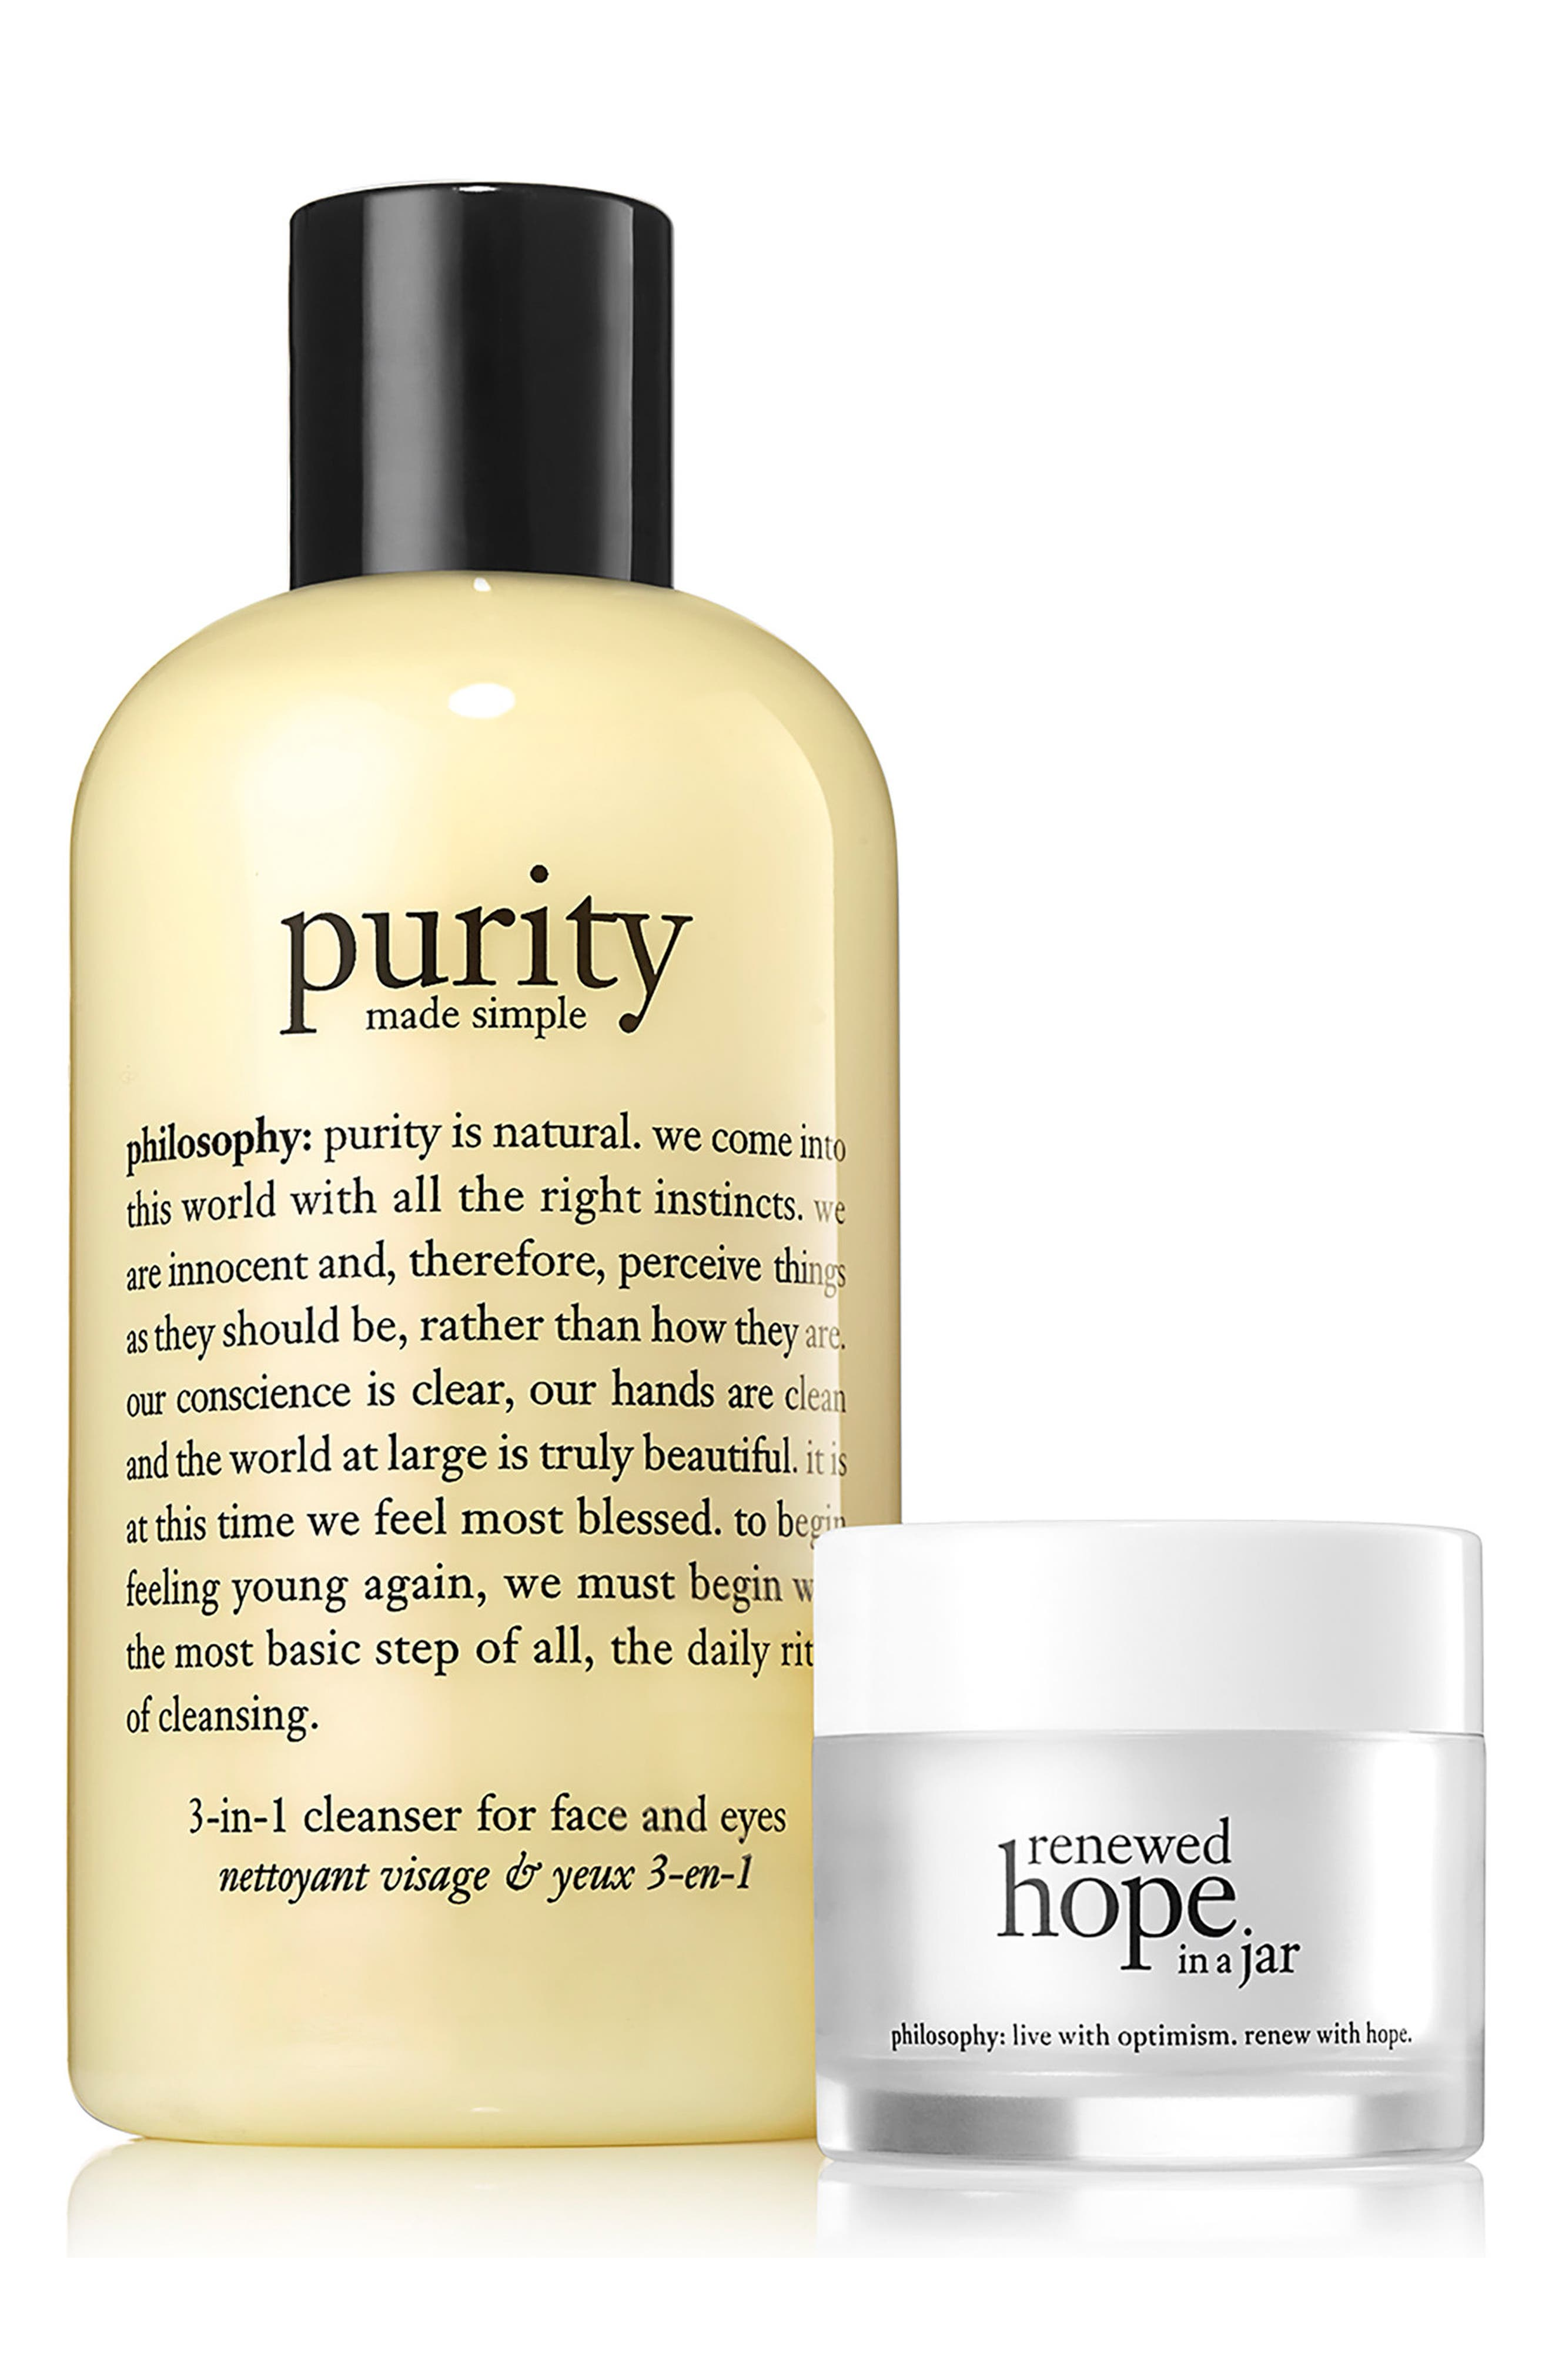 philosophy purity made simple & renewed hope duo